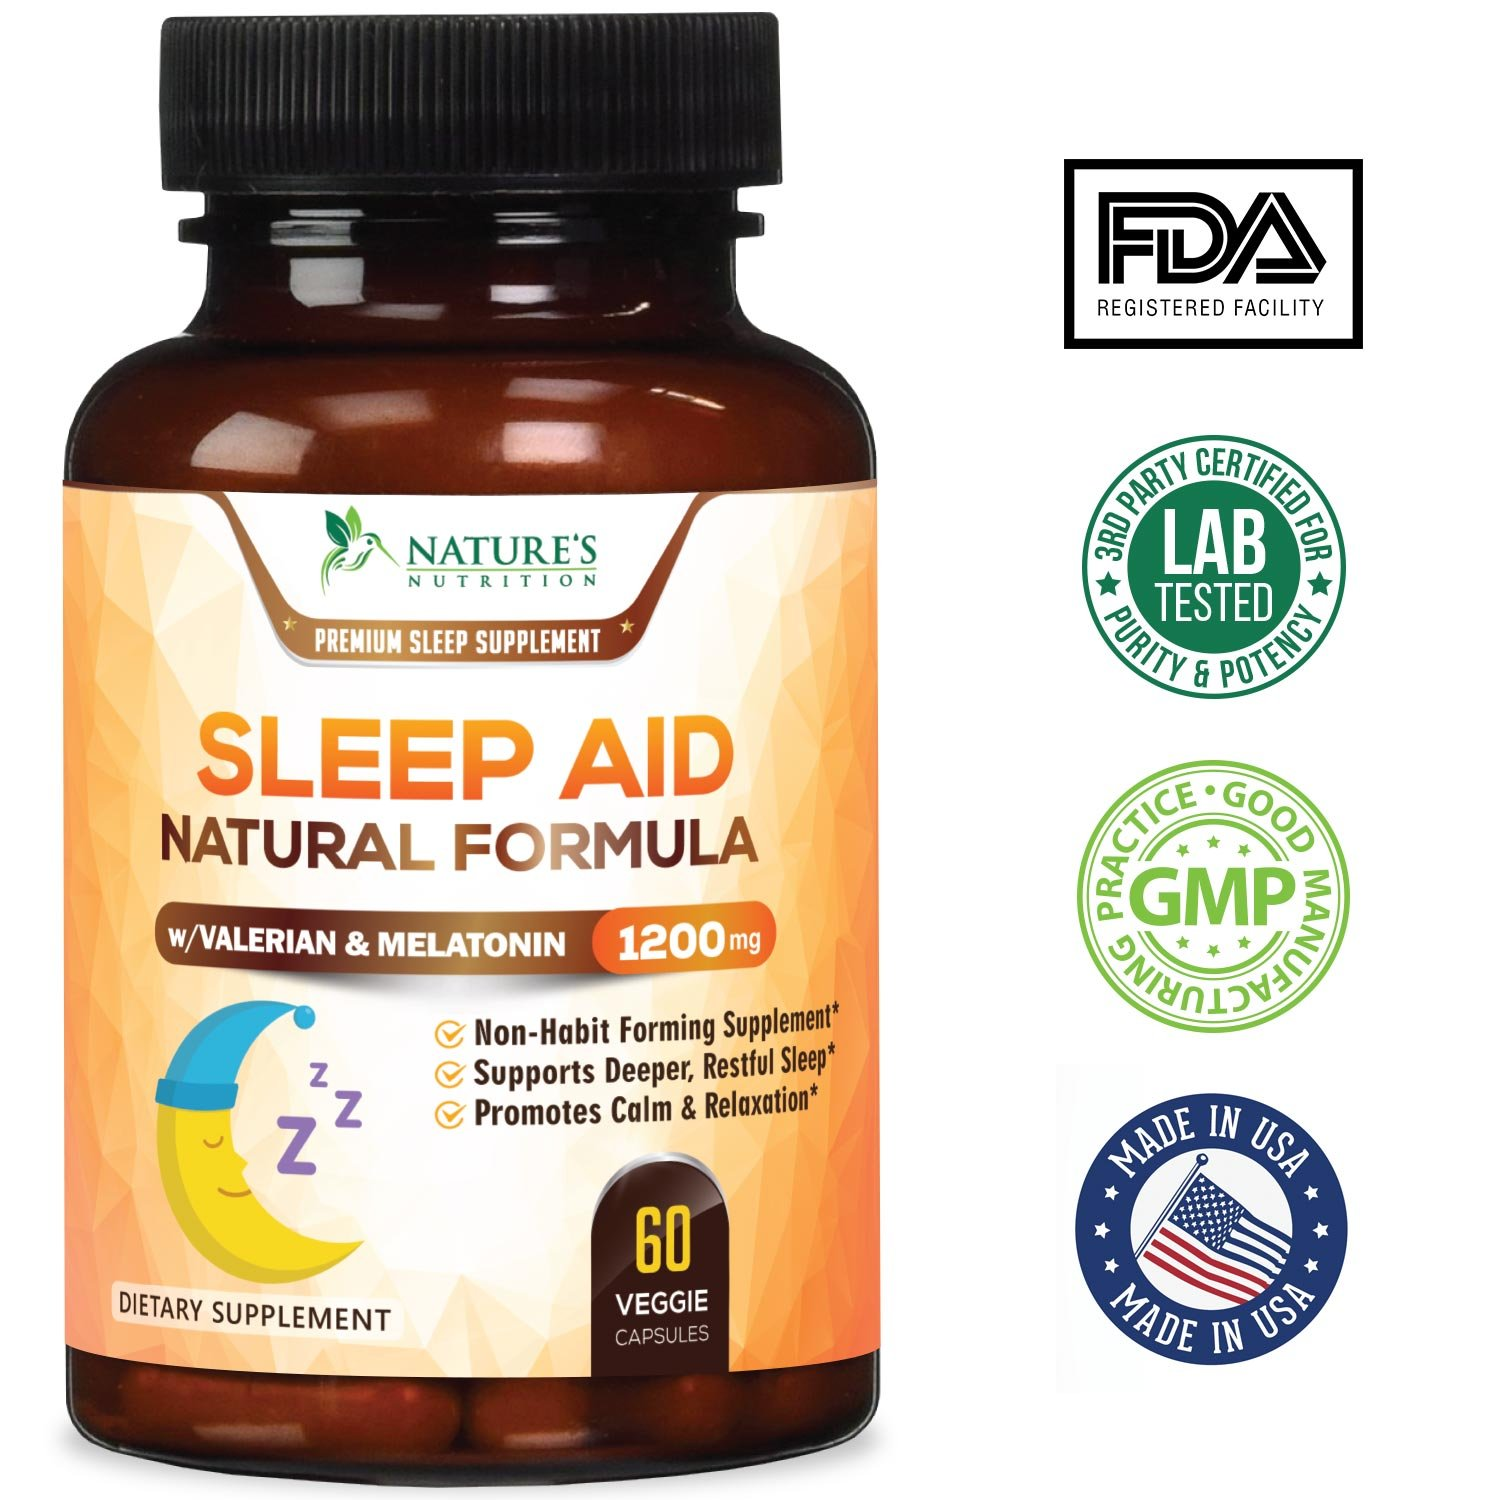 Amazon.com: Natural Sleep Aid Extra Strength Herbal Sleeping Pills with Melatonin, Valerian, Inositol & Chamomile - Natural Stress, Anxiety & Insomnia ...